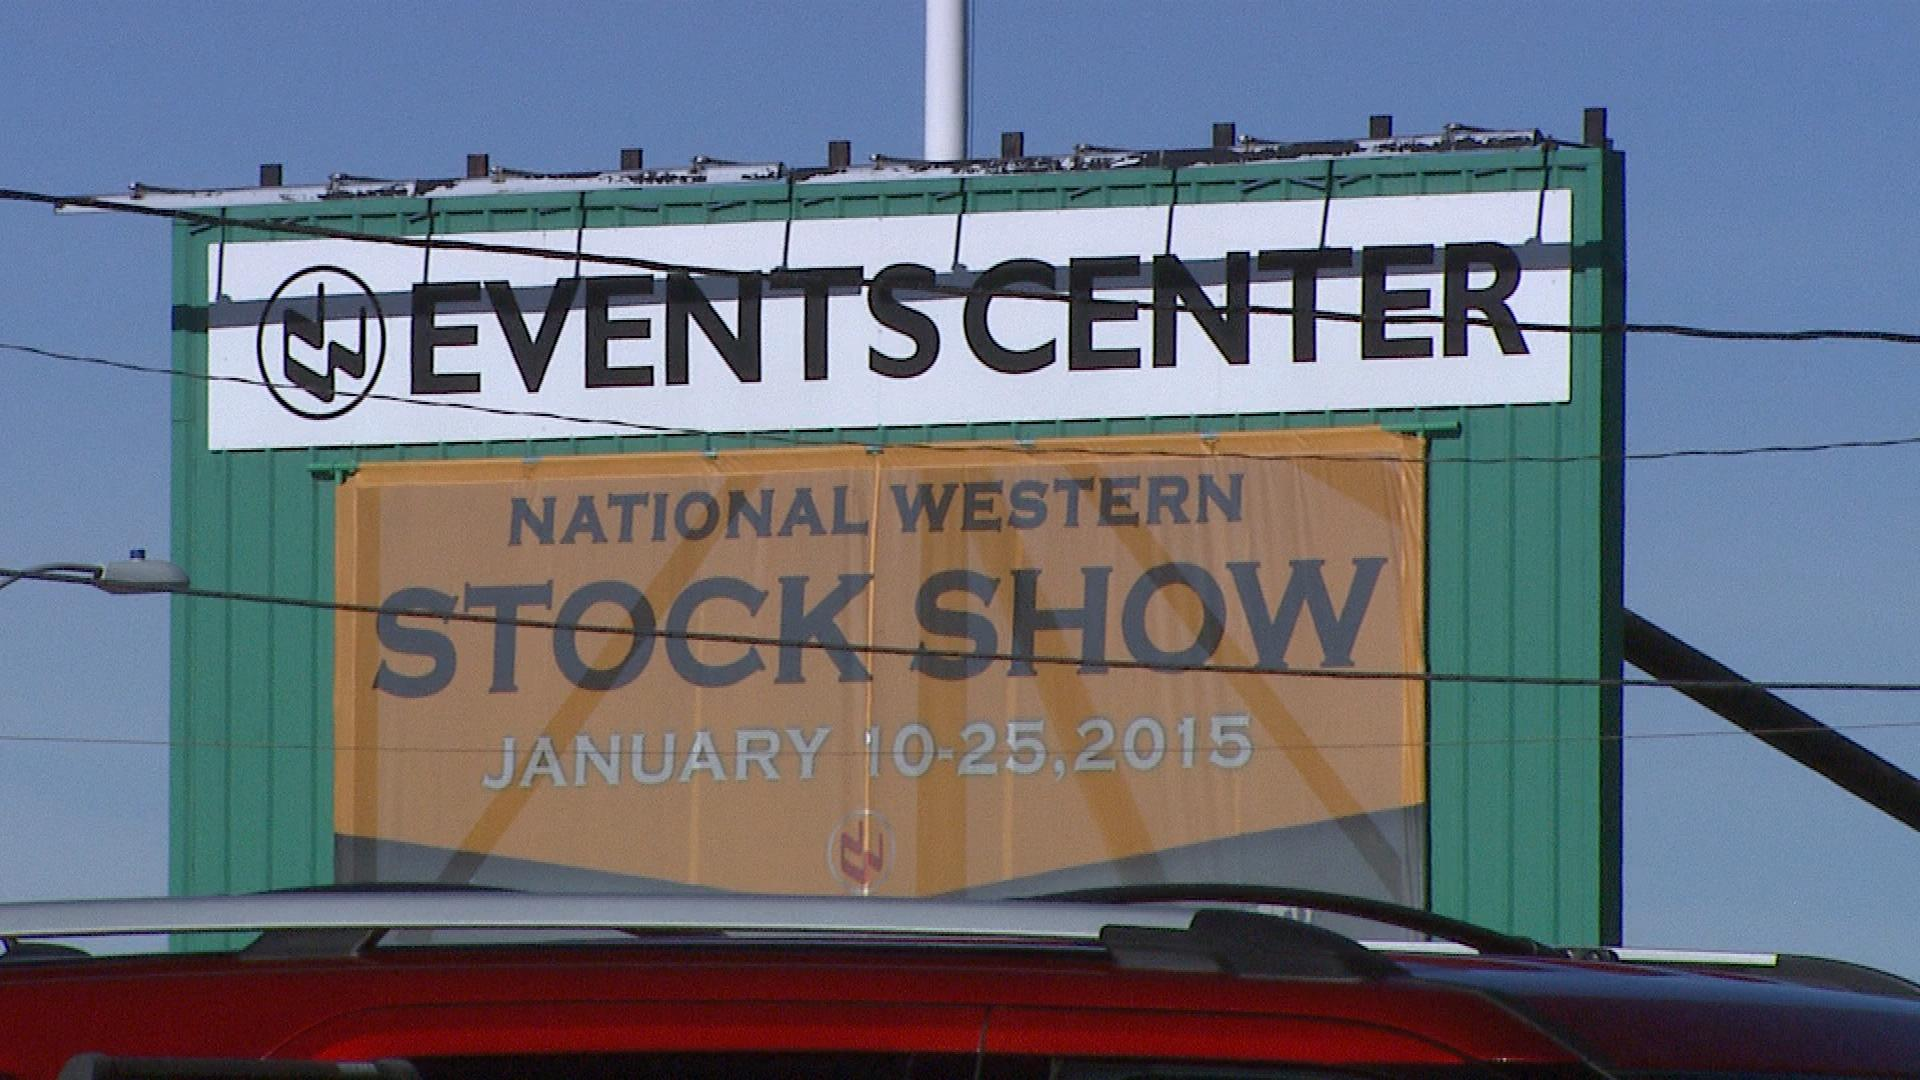 National Western Stock Show (credit: CBS)